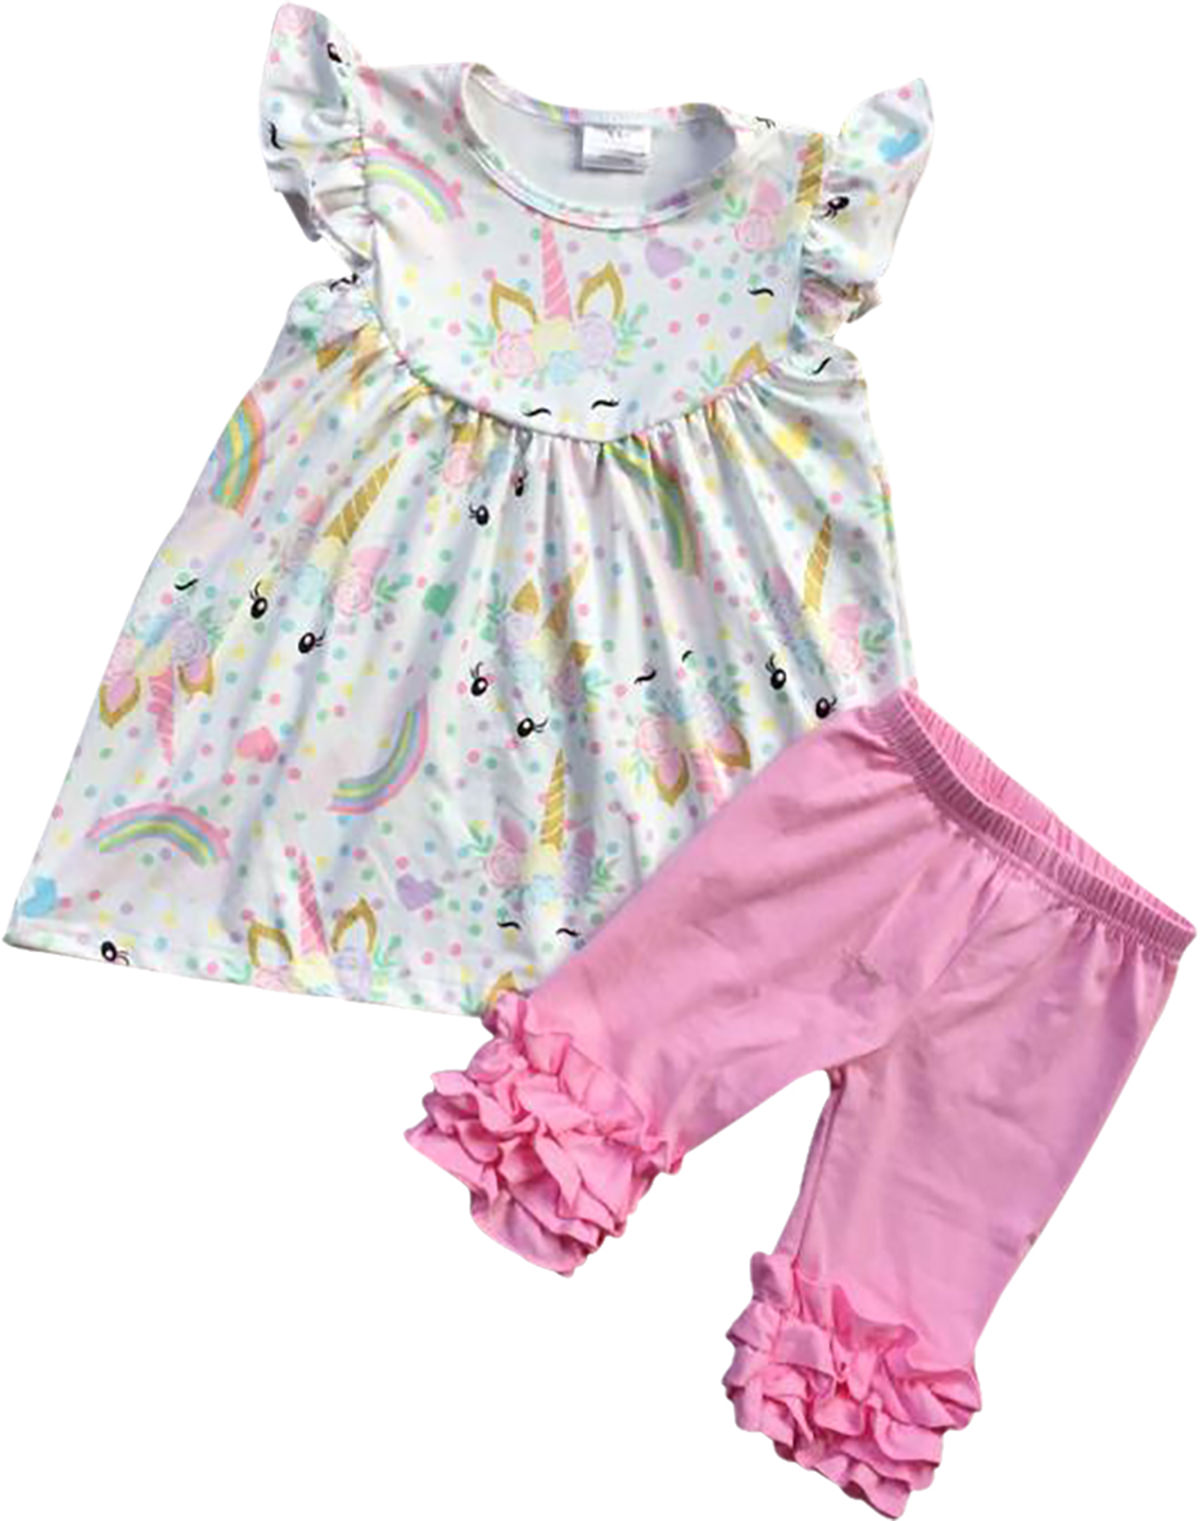 Girls 2 Pieces Pant Set Unicorn Dress Ruffle Pants Outfit Clothing Set Off White 2T XS (201334)